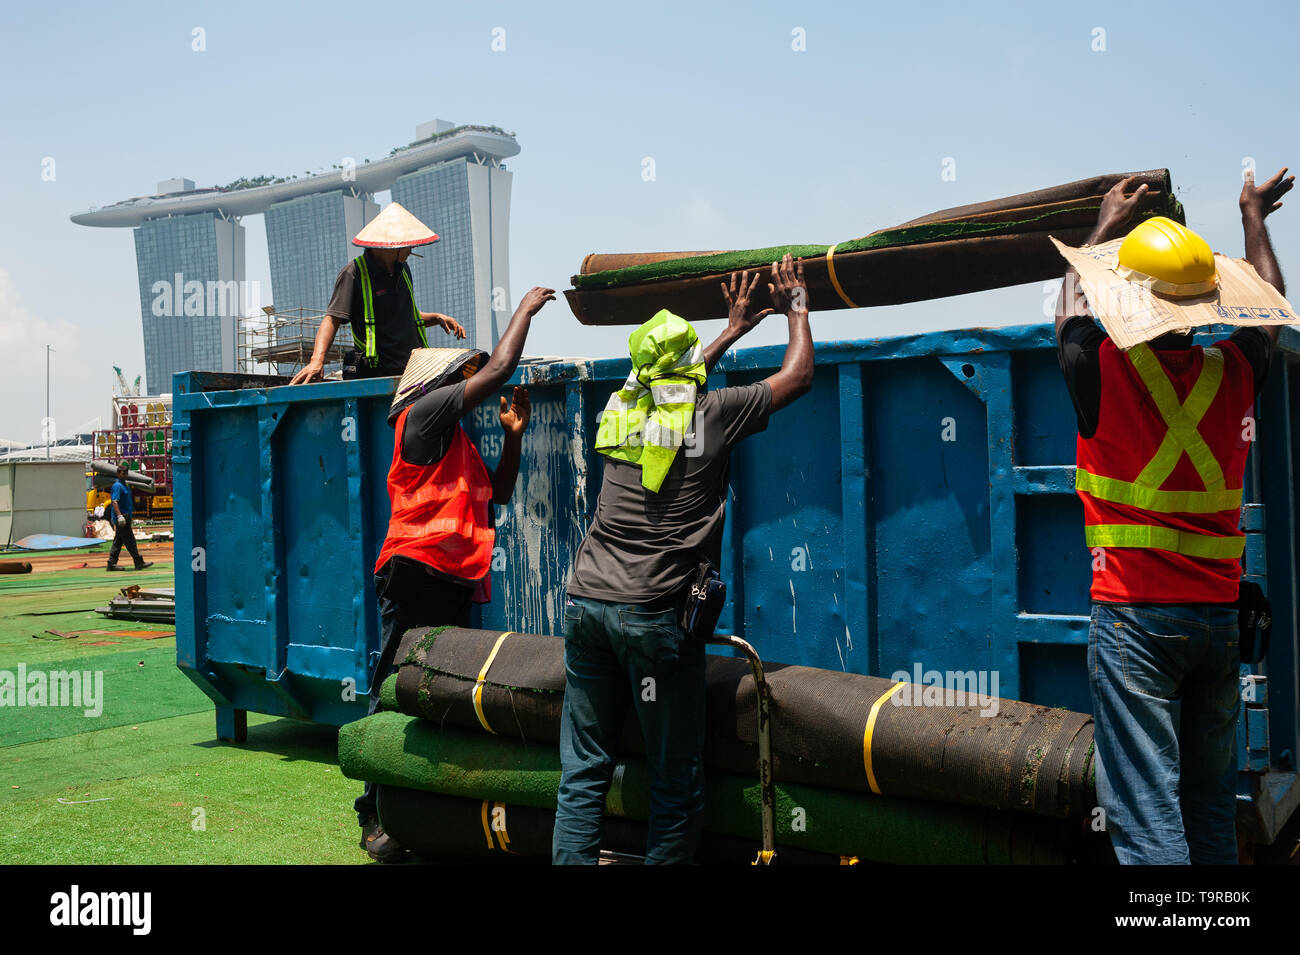 04.04.2018, Singapore, Republic of Singapore, Asia - Workers are seen disposing of artificial turf in Marina Bay with the Marina Bay Sands Hotel in th - Stock Image